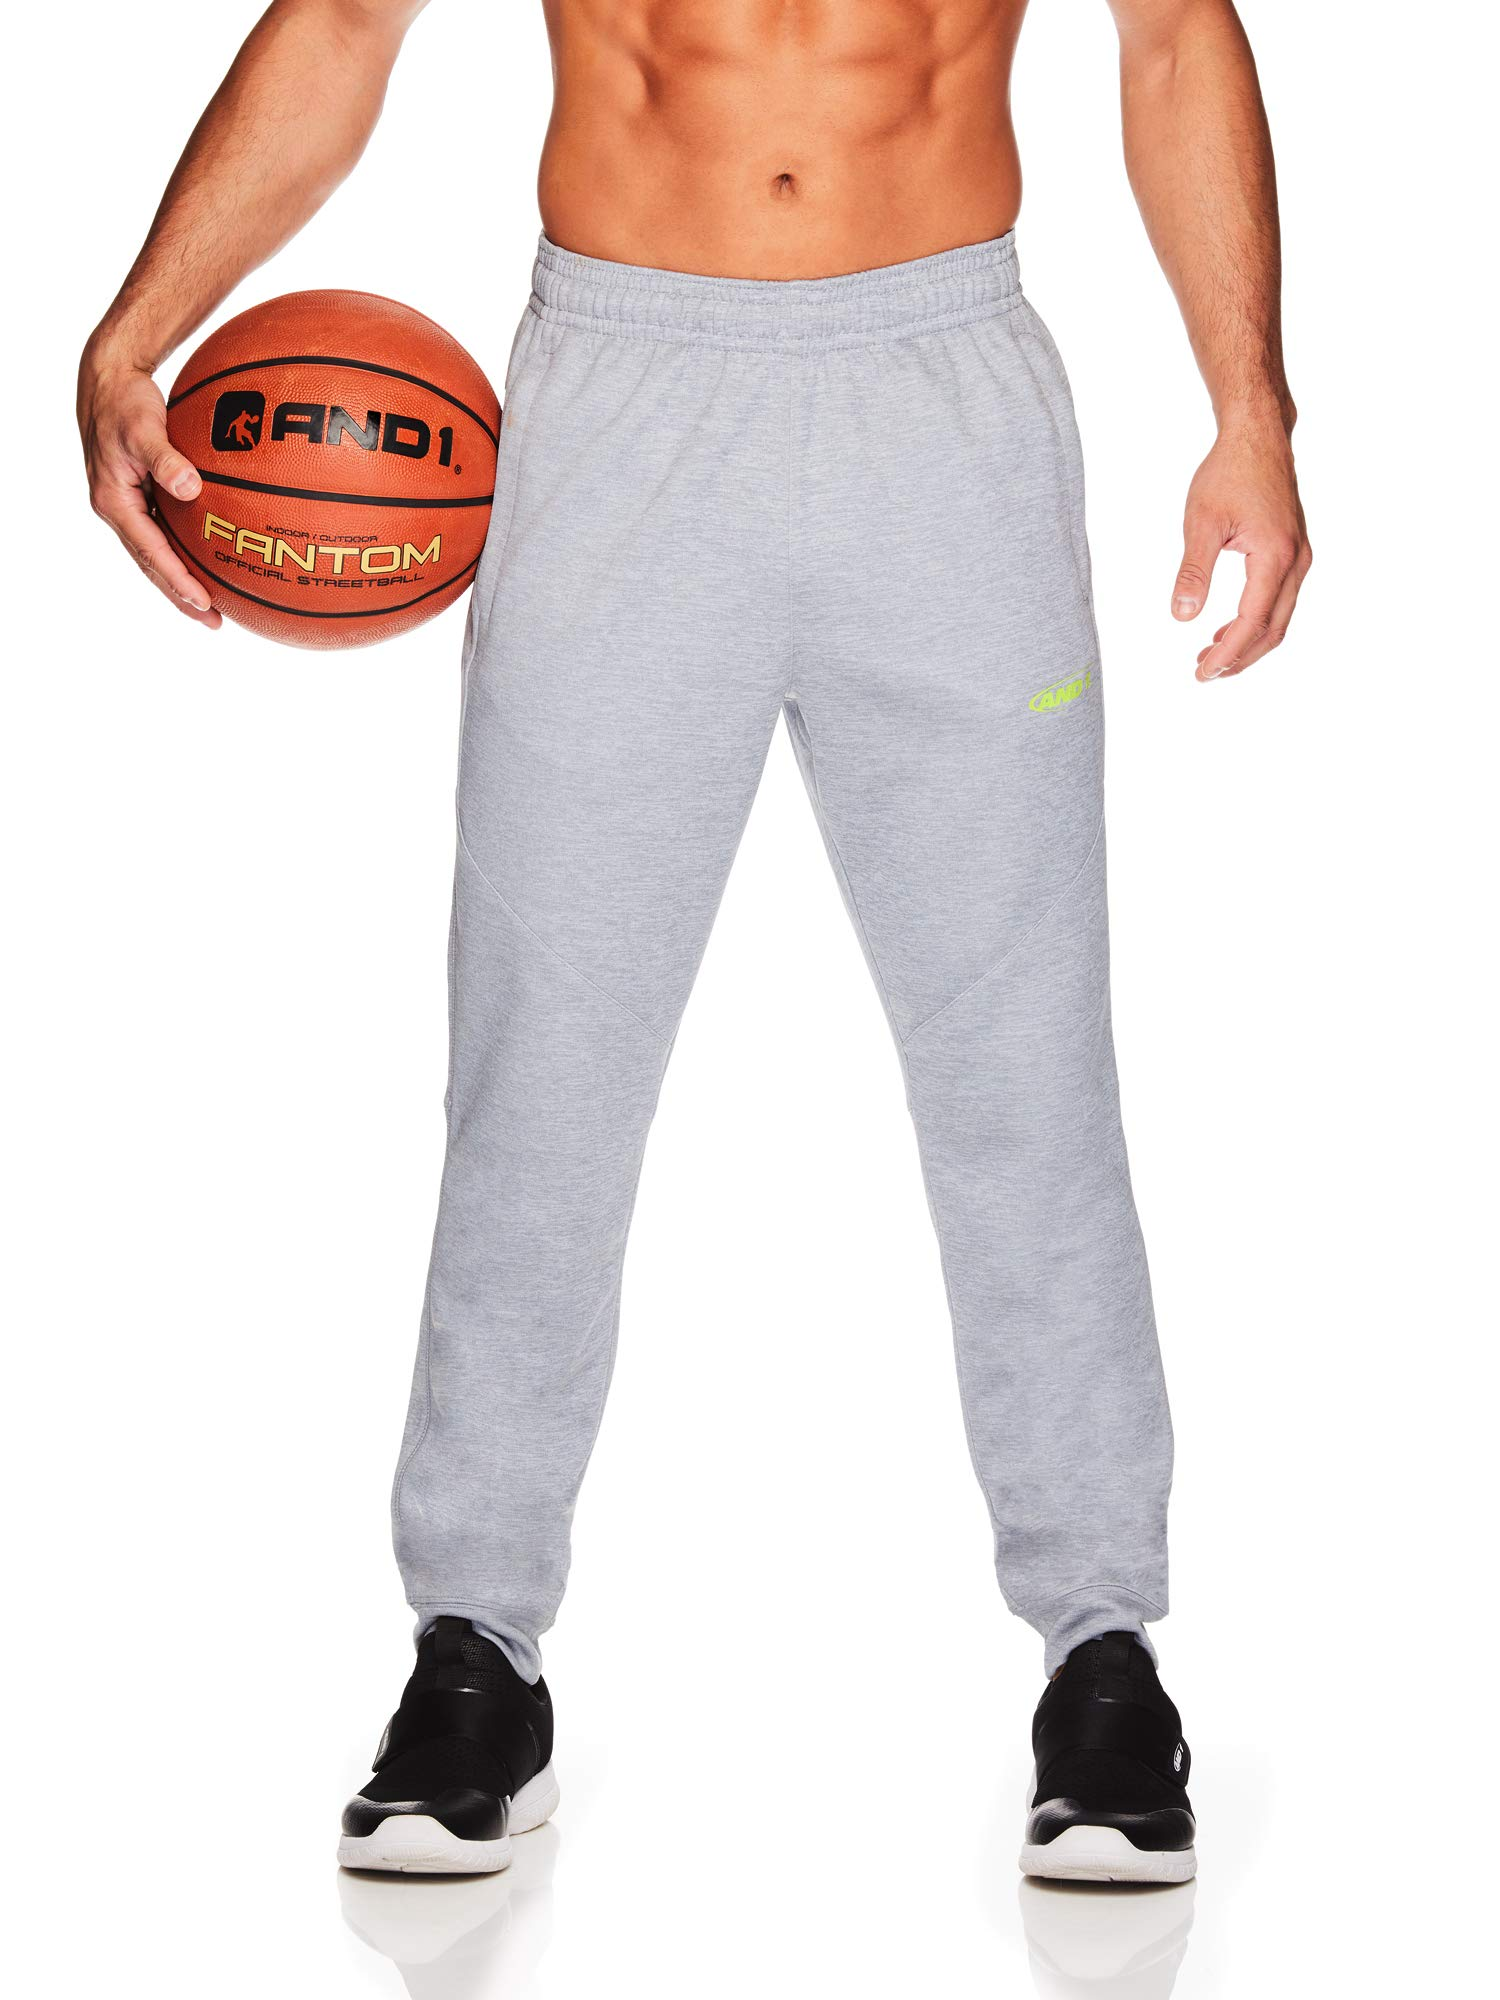 AND1 Men's Tricot Jogger Pants - Basketball Running & Jogging Sweatpants w/Pockets - Grey Heather/Lime, Small